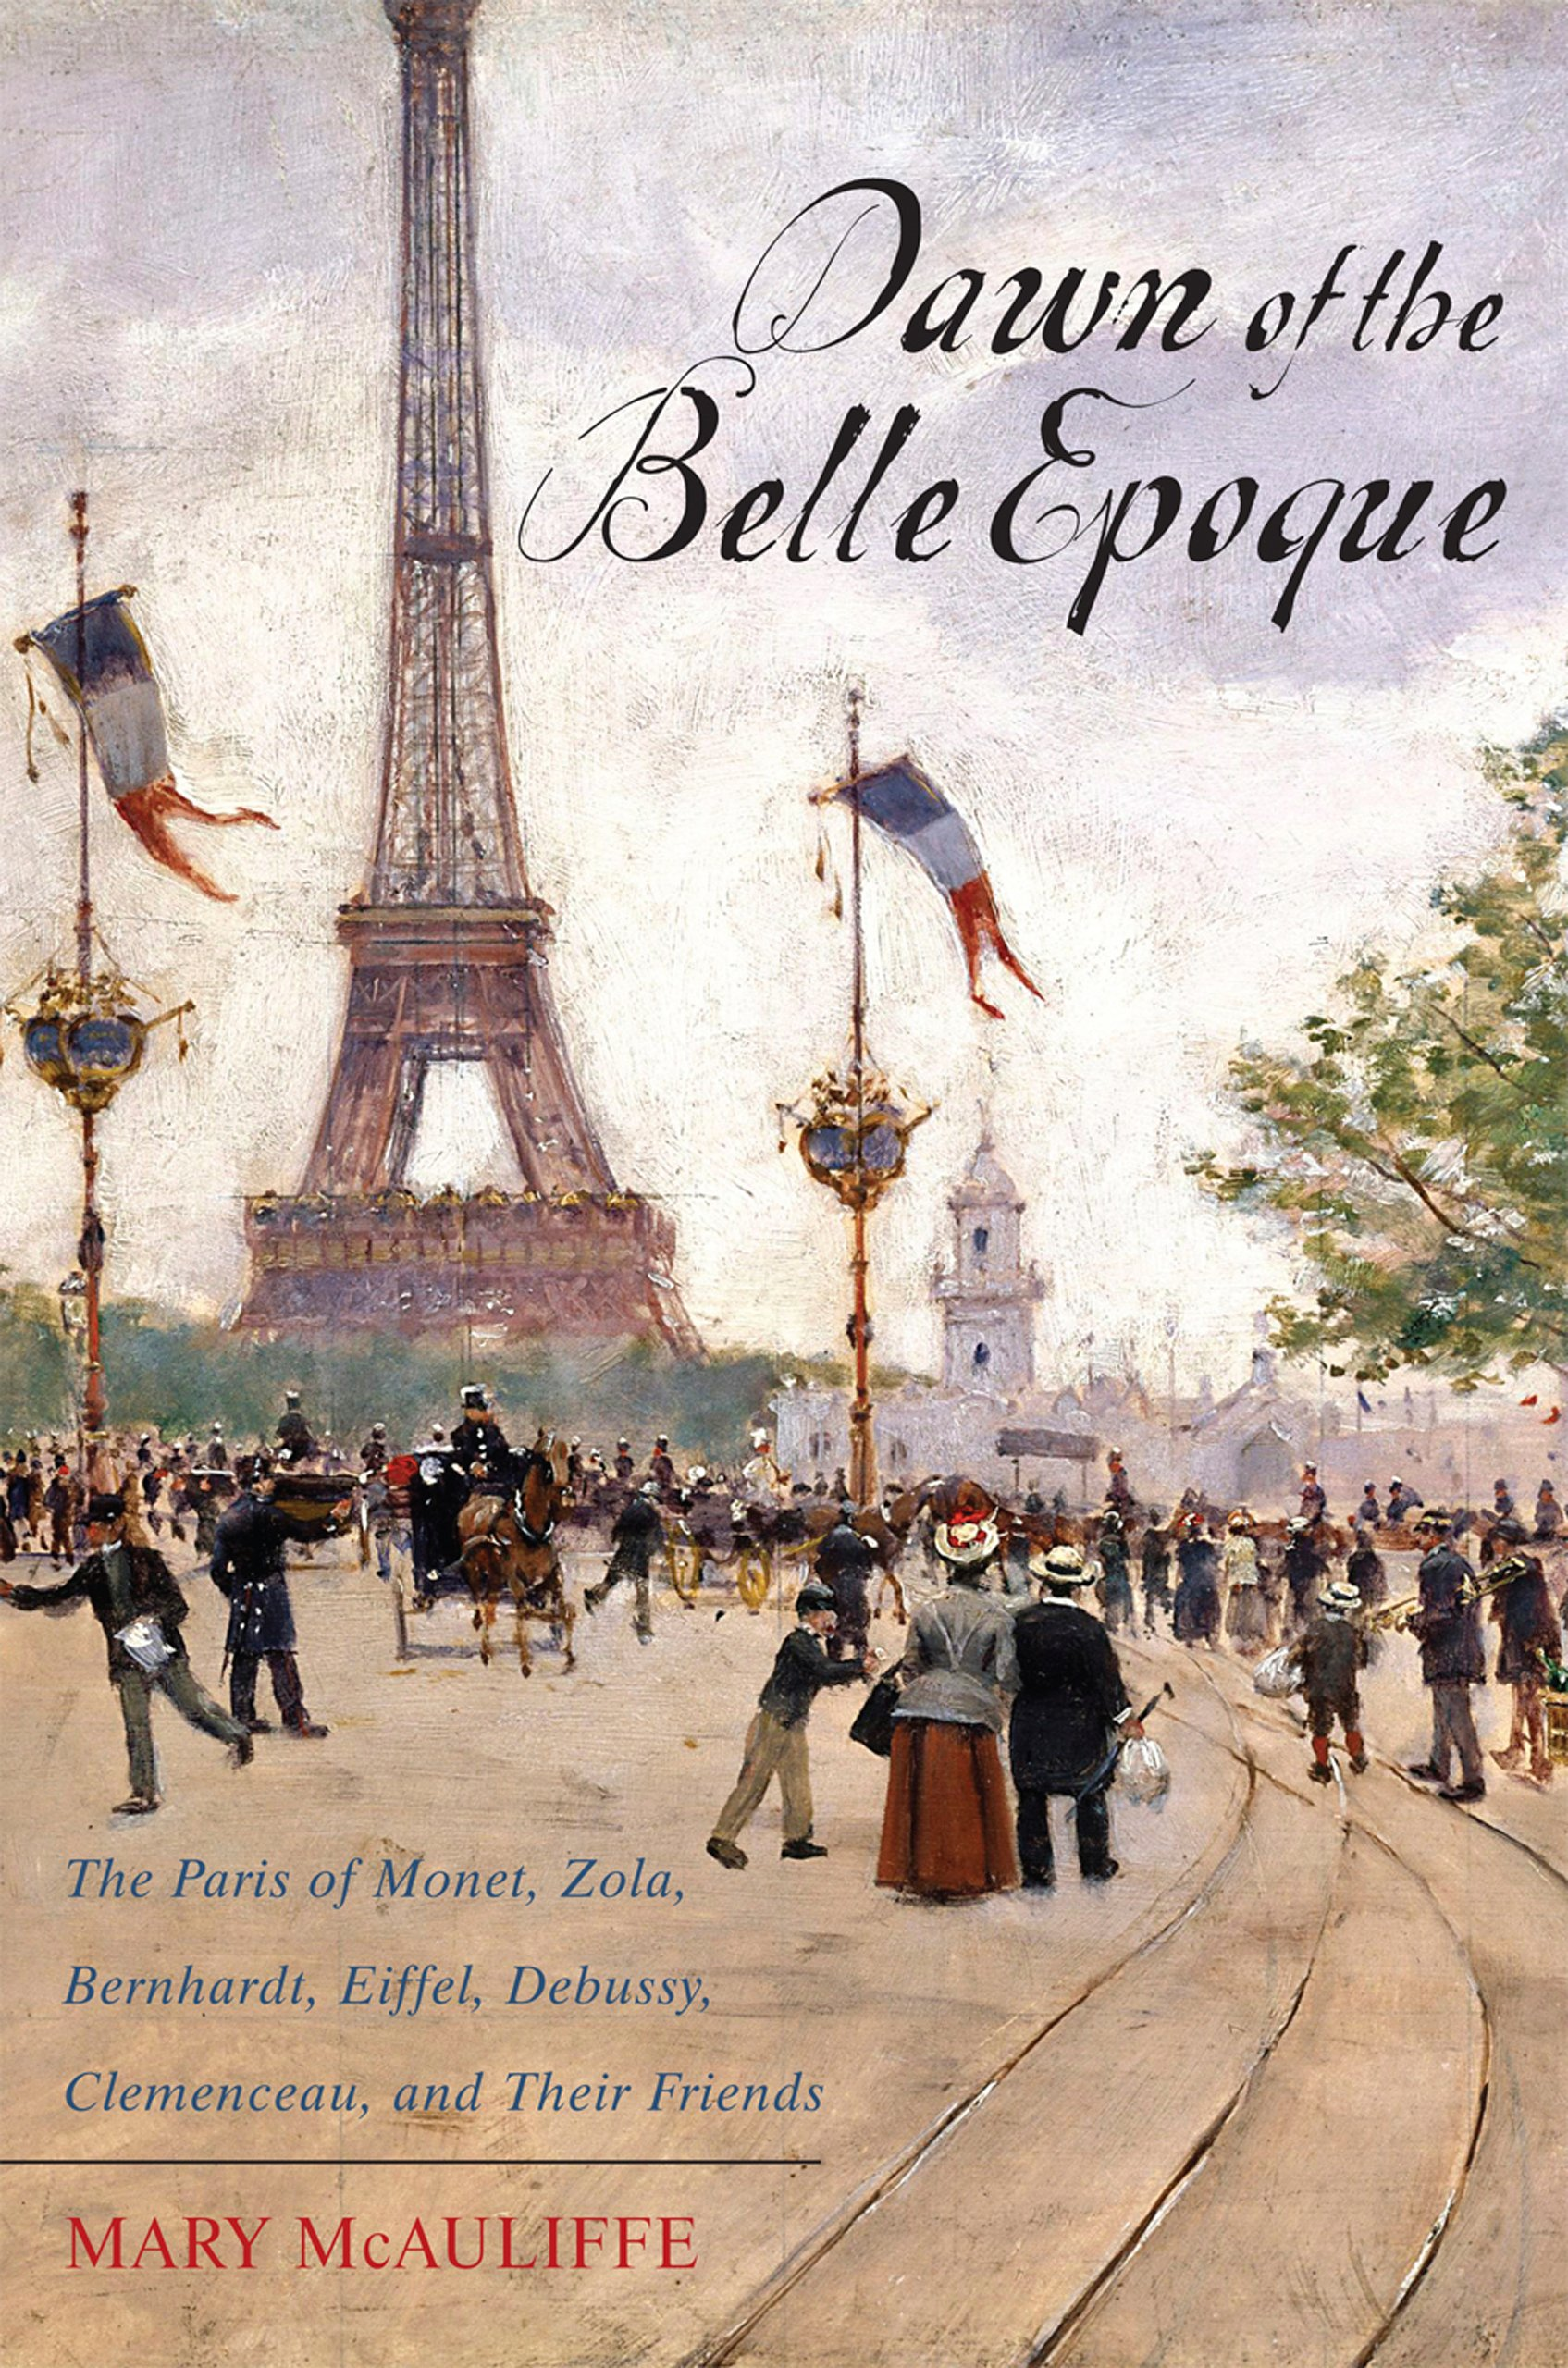 Download Dawn of the Belle Epoque: The Paris of Monet, Zola, Bernhardt, Eiffel, Debussy, Clemenceau, and Their Friends PDF